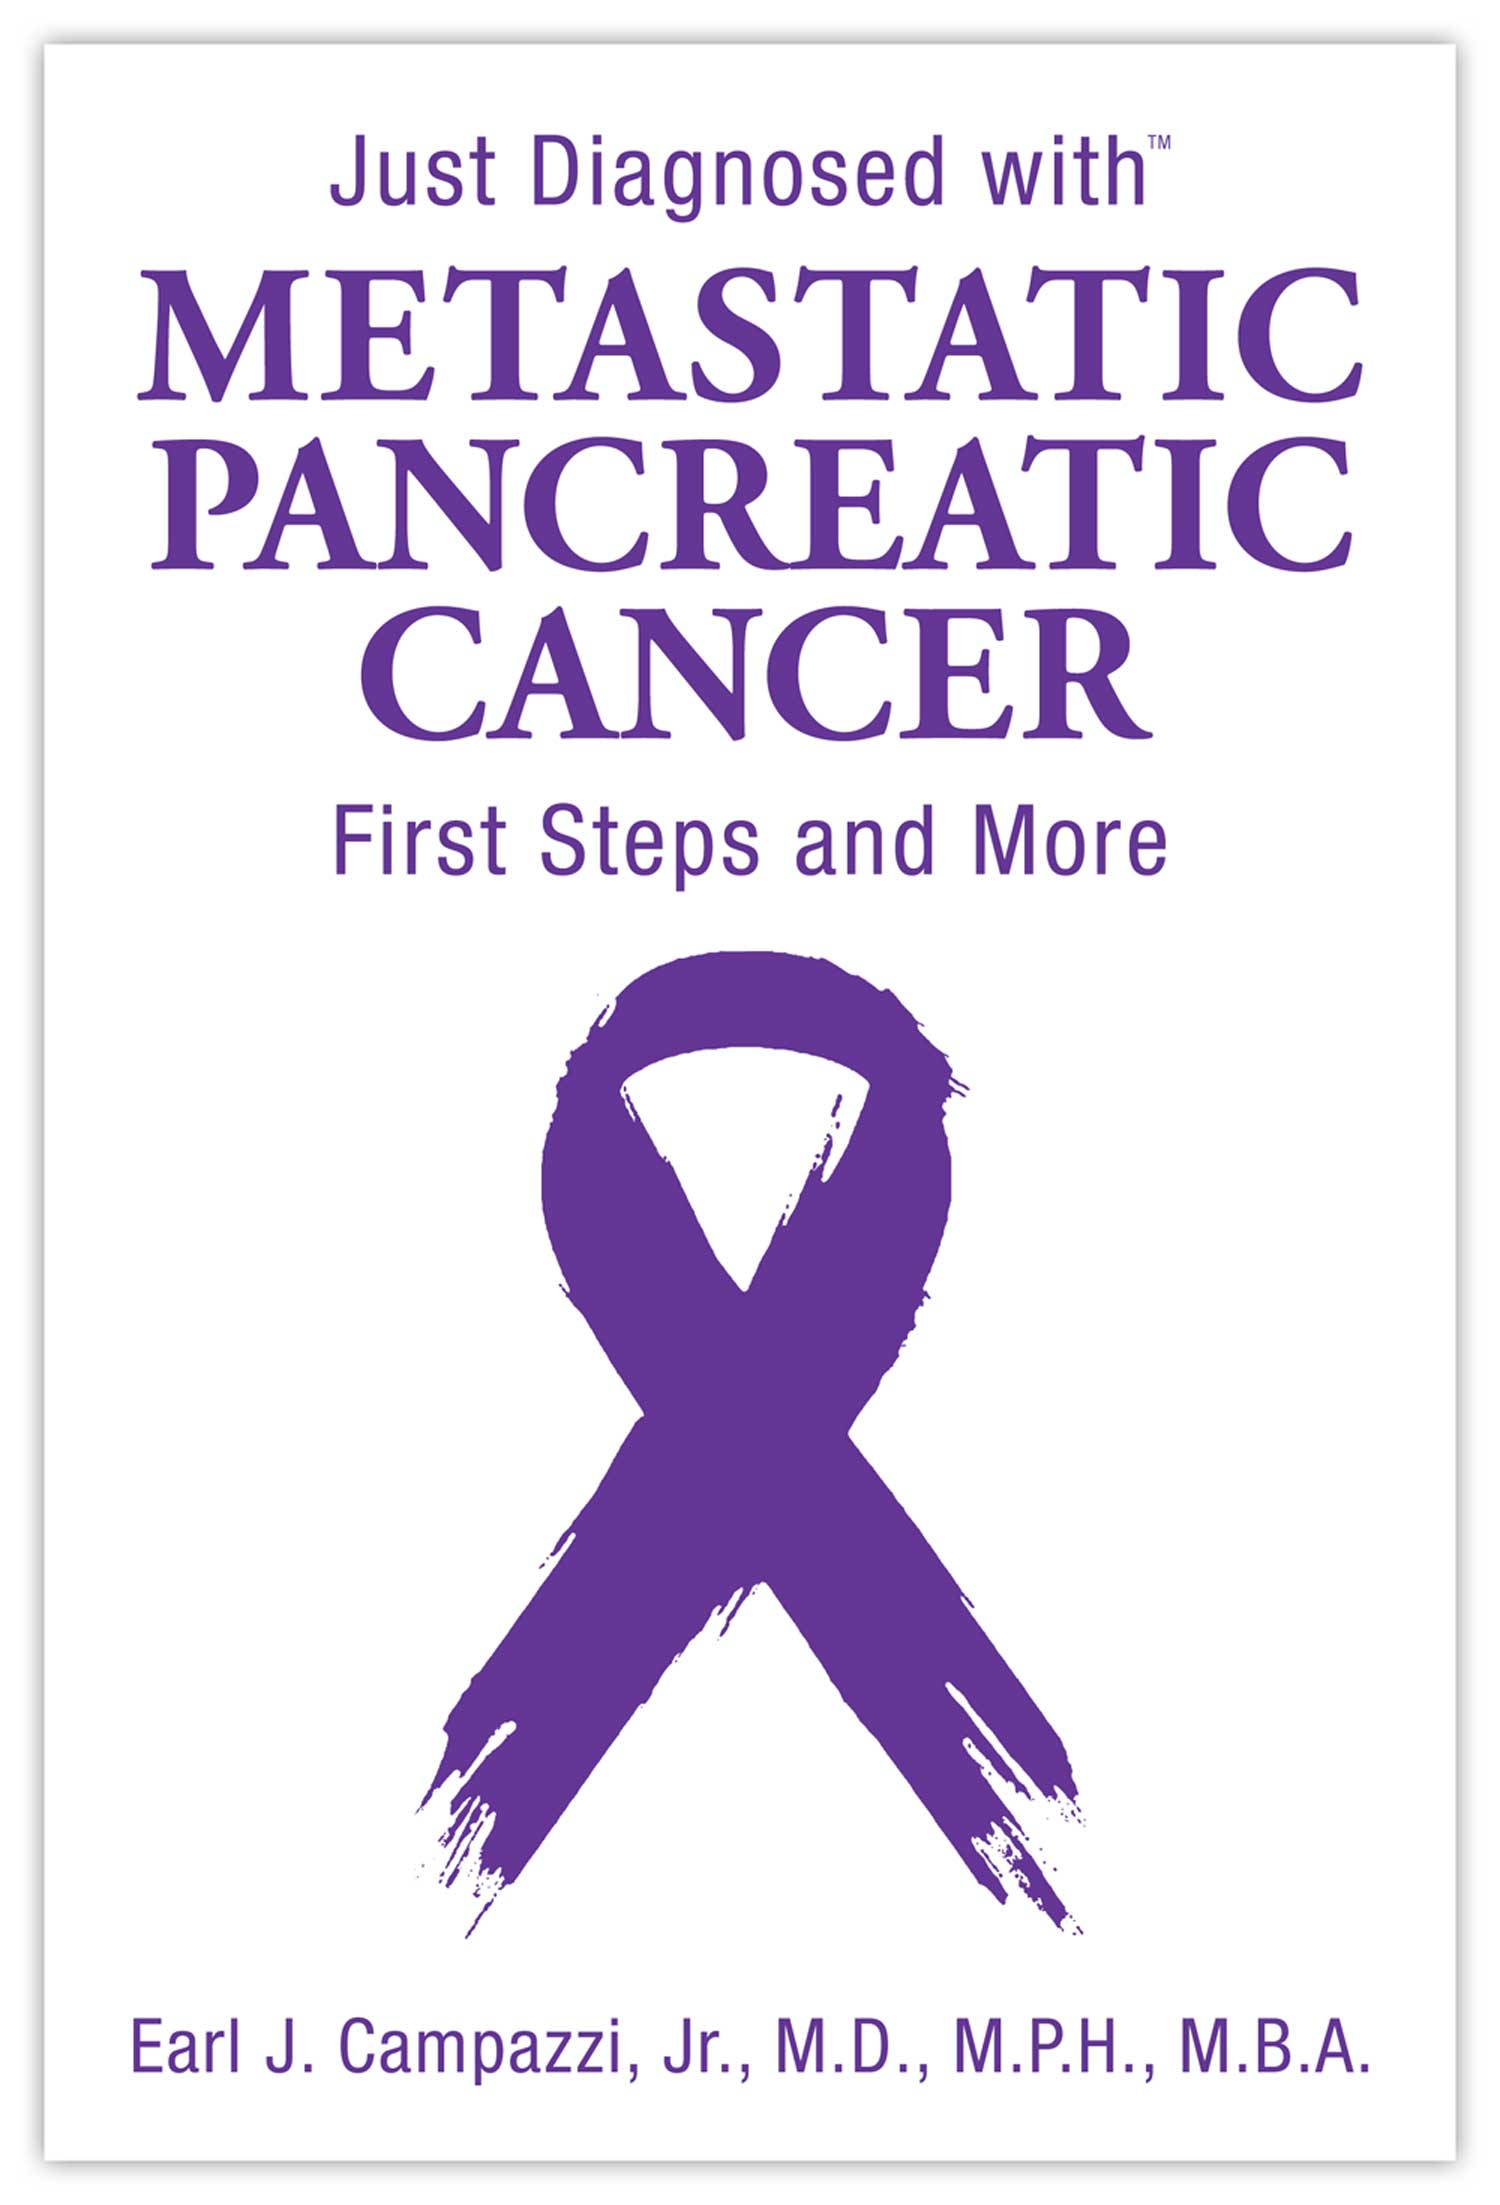 Selected as a best book on pancreatic cancer by PancreaticCancerToday.com